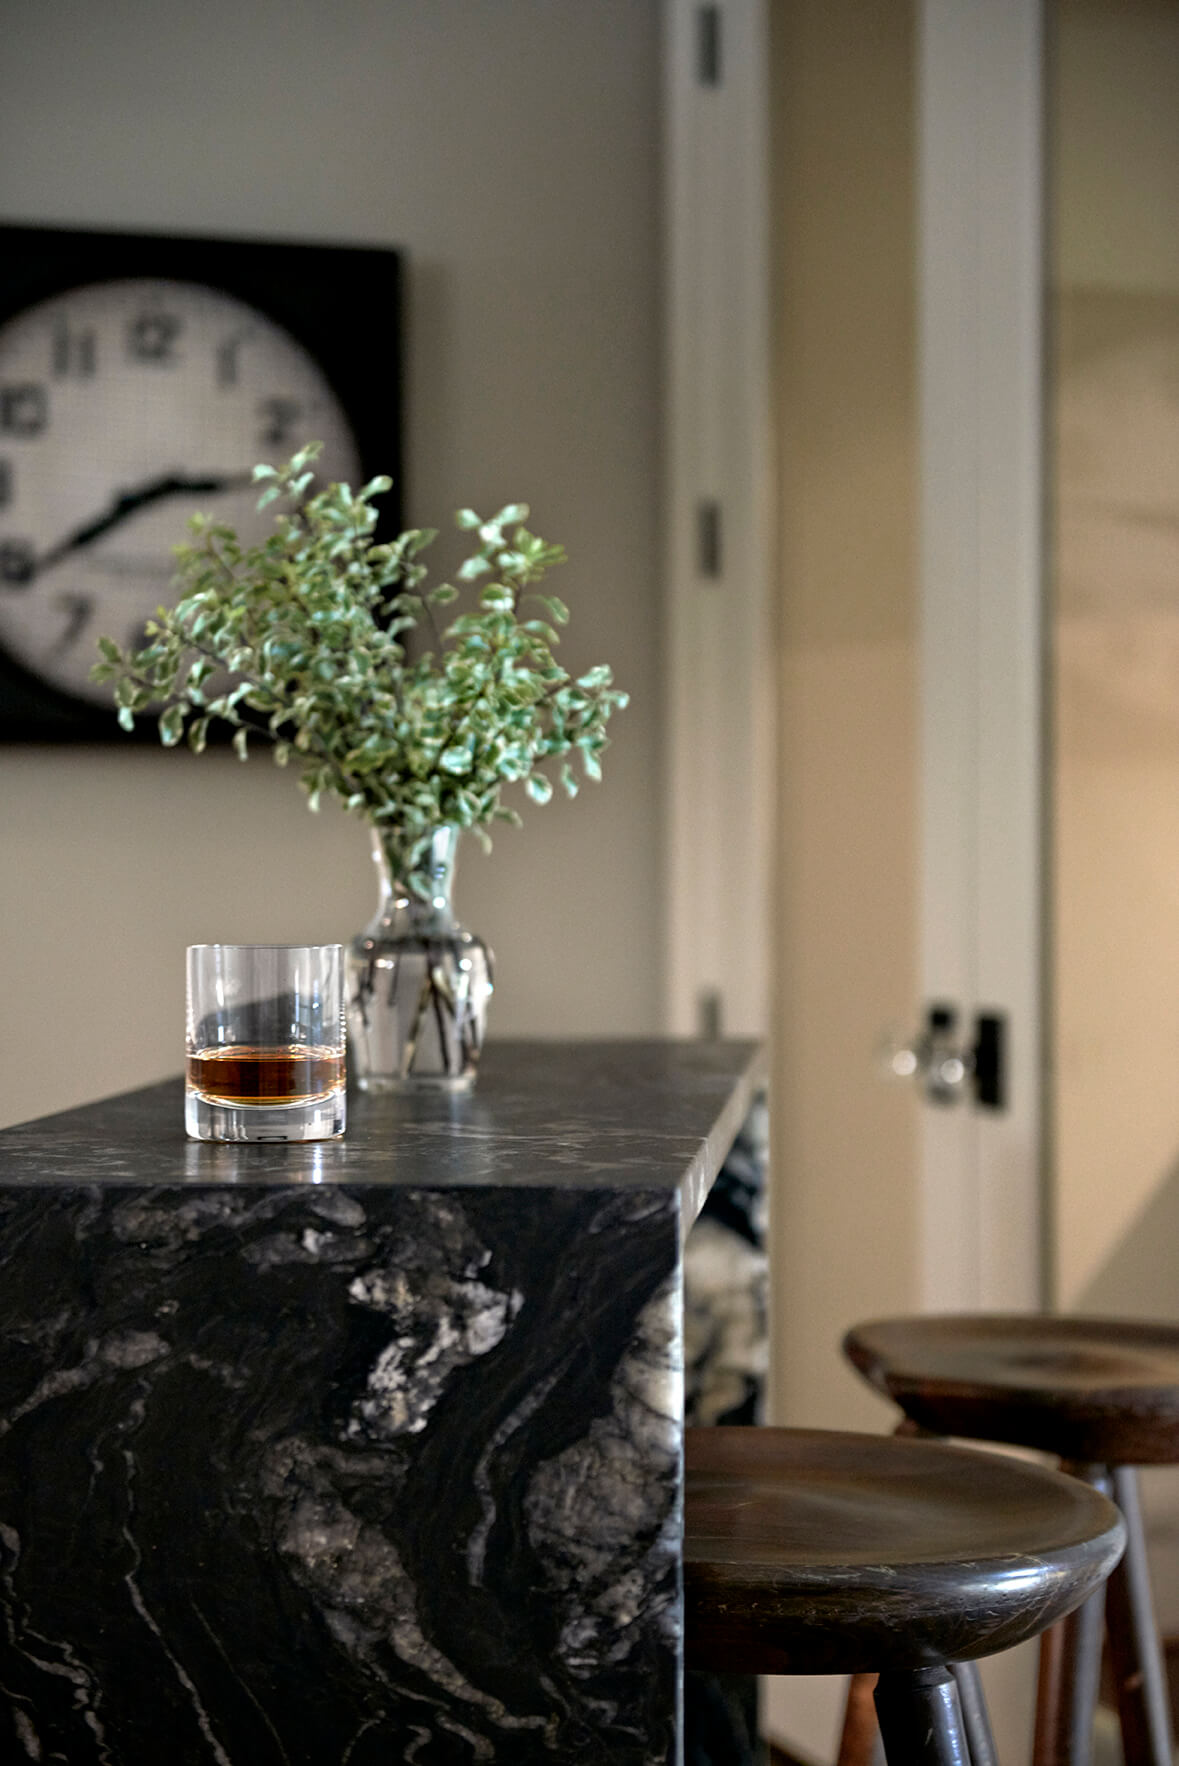 Black and gray marble bar with a small plant and rock glass on top - Rustic Contemporary Bureau Interior Design Nashville TN